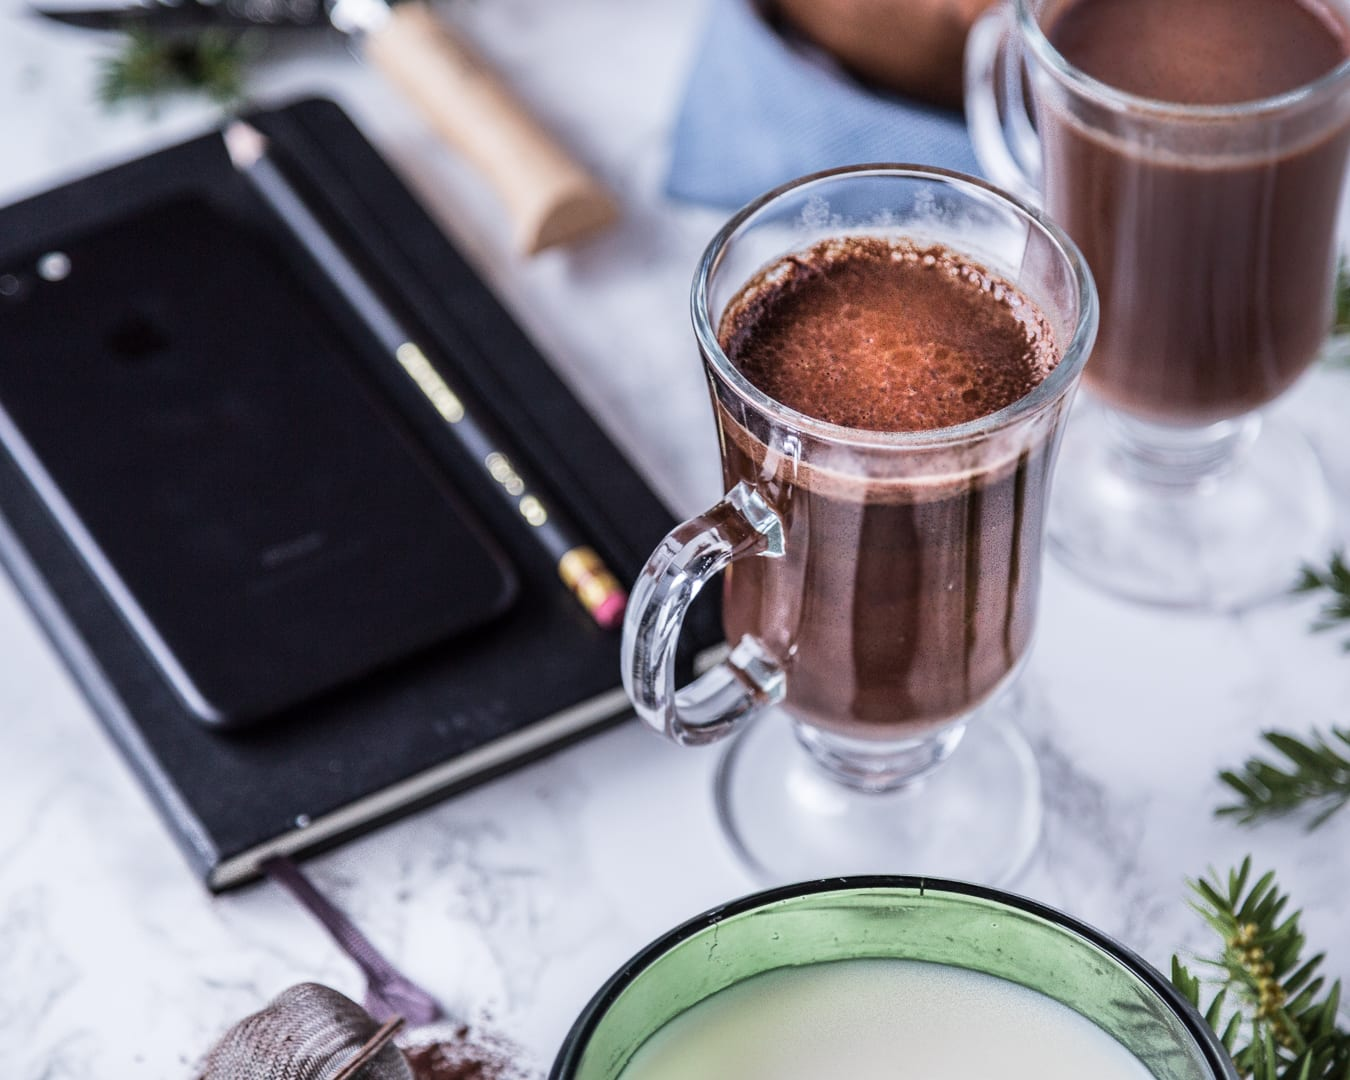 Paleo Vegan Hot Cacao Cocoa Chocolate Warm Drink Idea Holidays Recipe Easy 5 ingredients or less